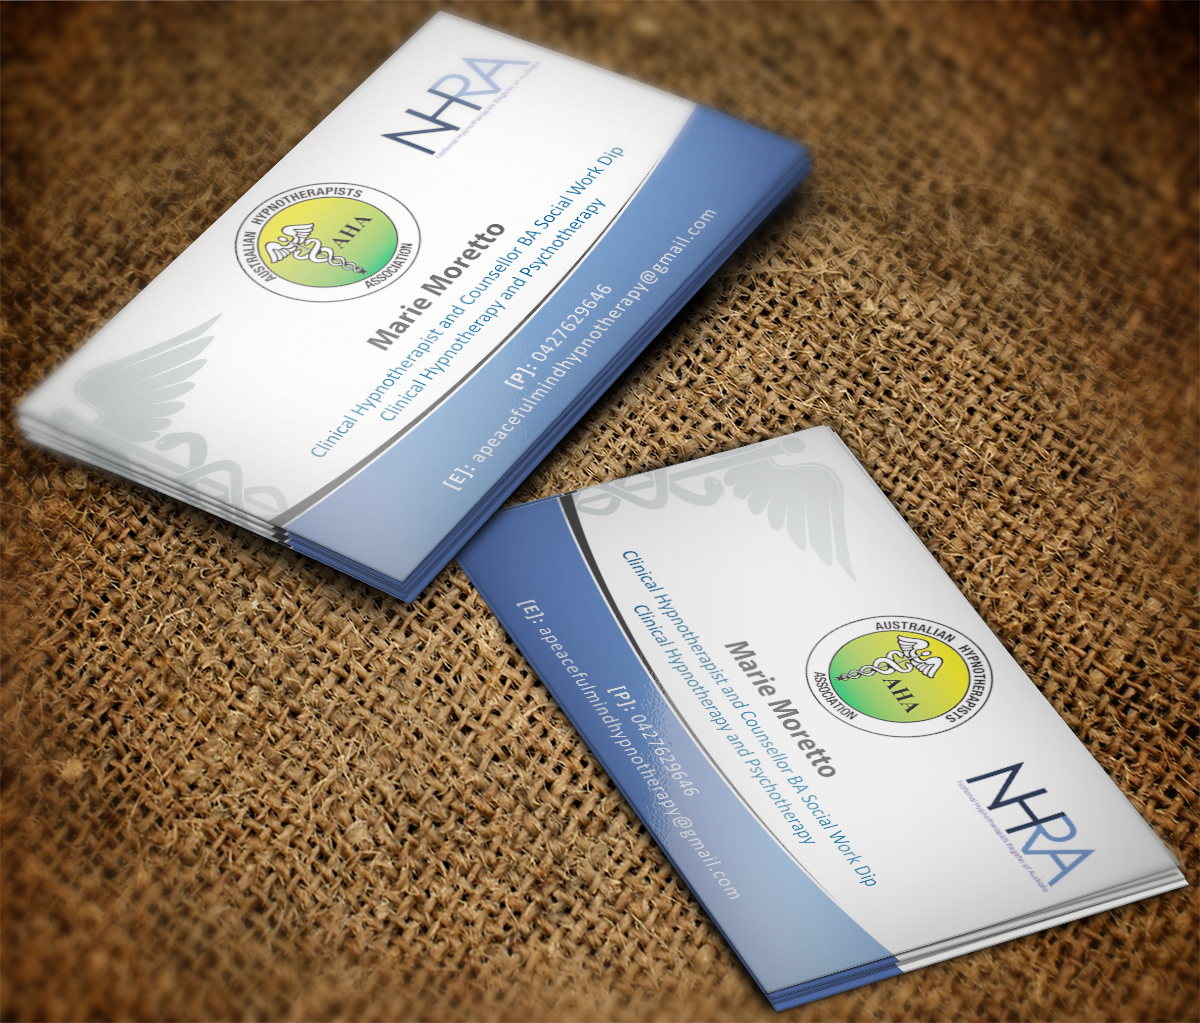 Hypnotherapy Business Card Design for a Company by MT | Design #5399623